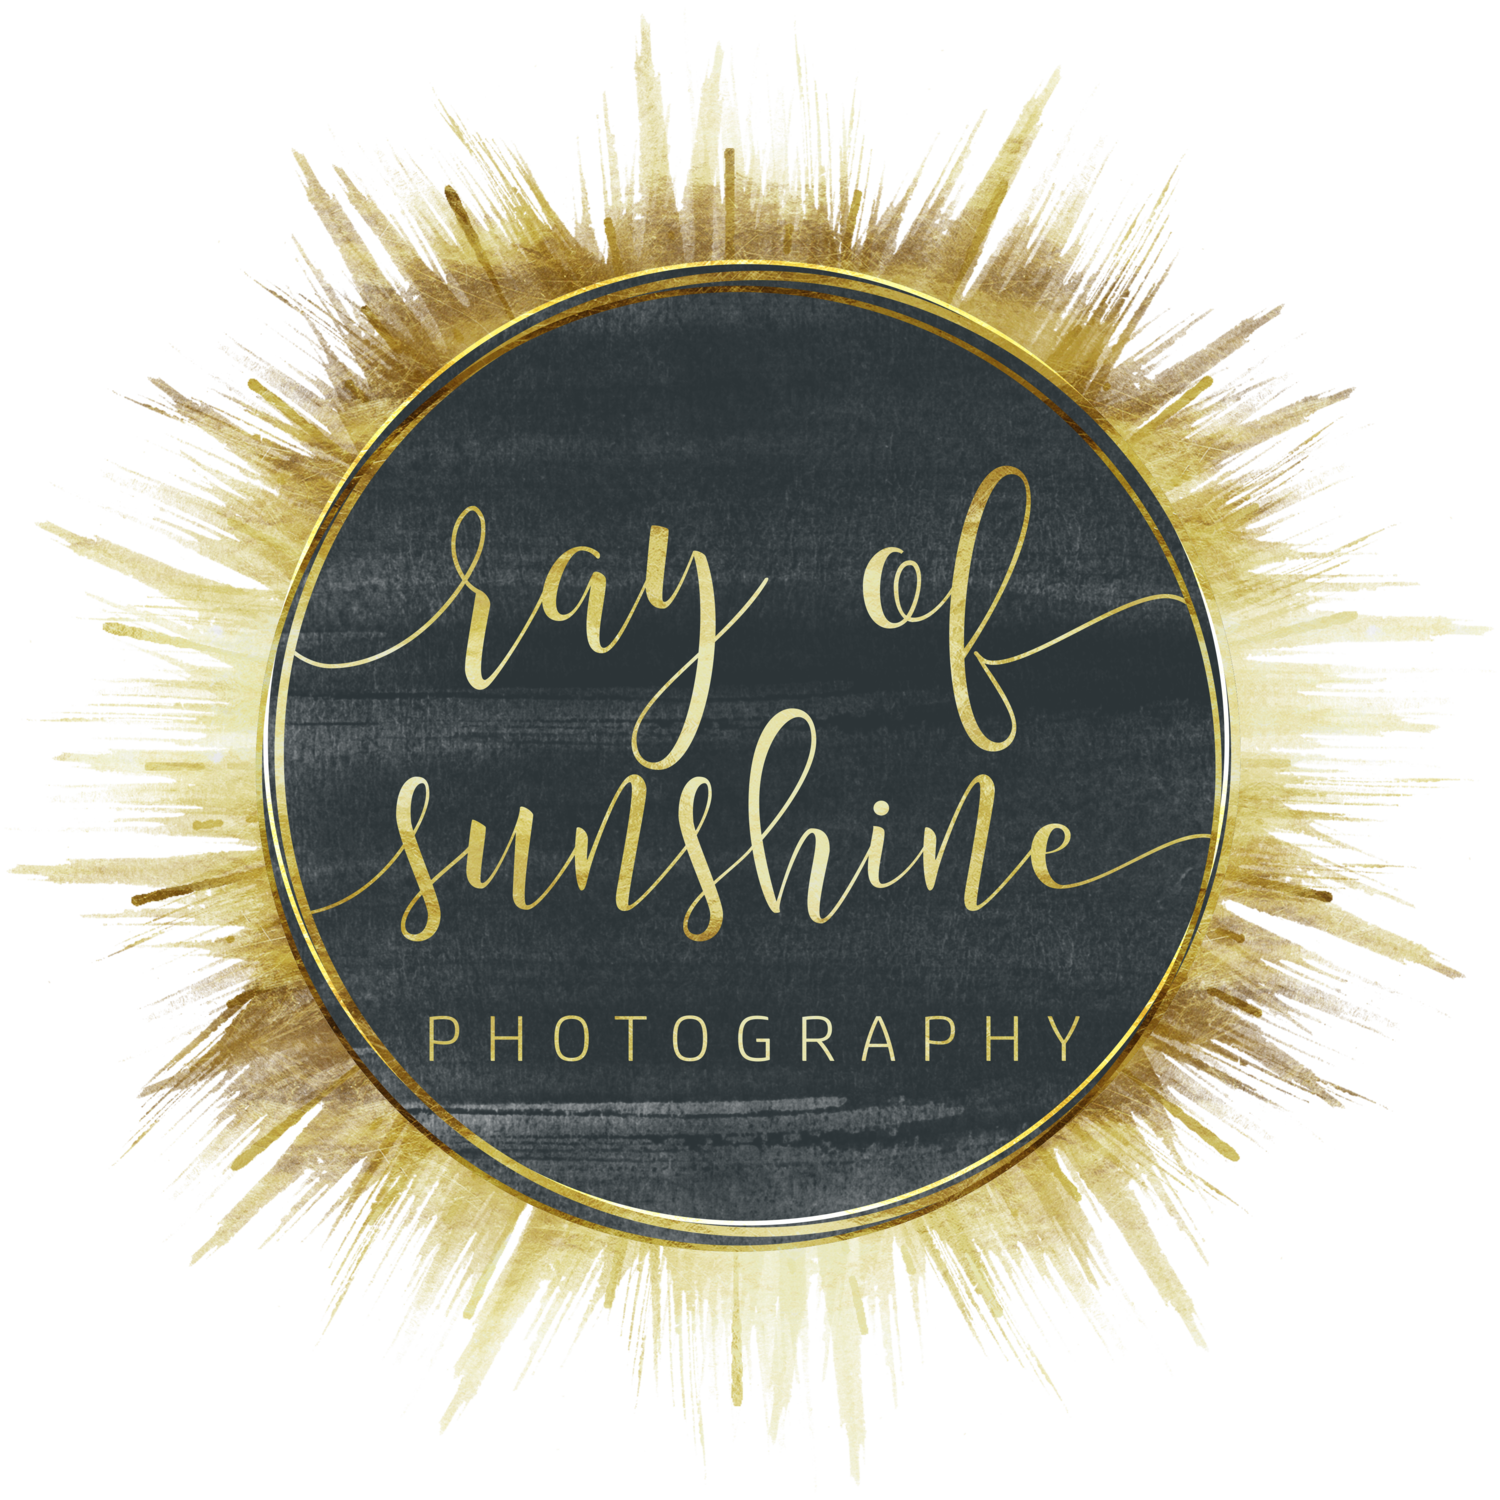 Ray of Sunshine Photography